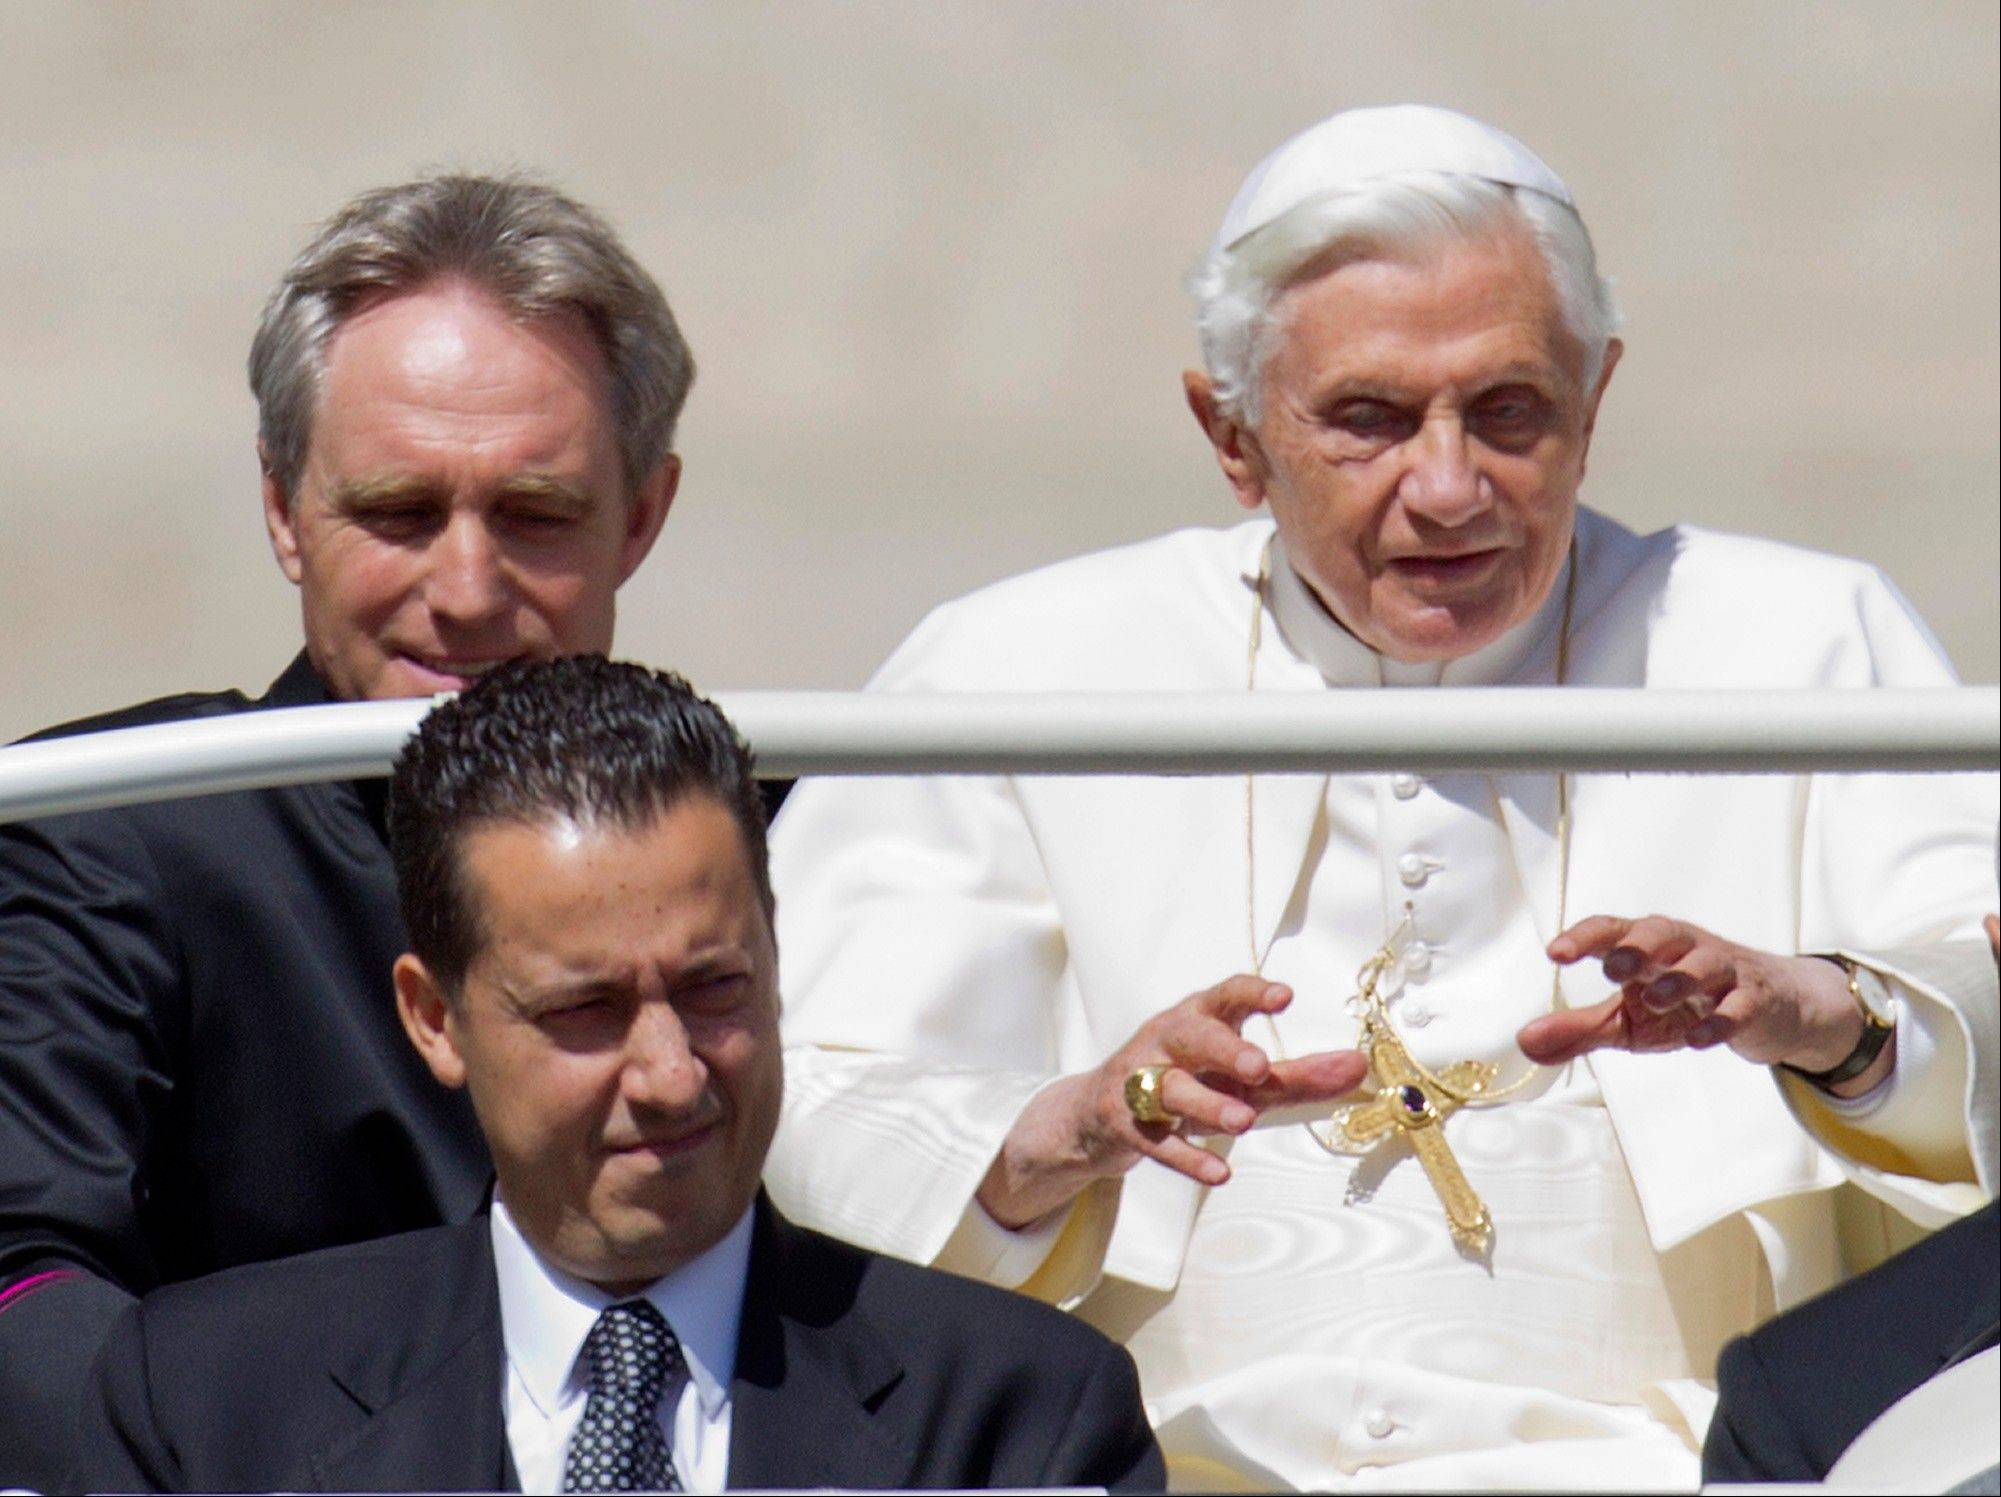 Pope Benedict XVI, flanked by his private secretary Georg Gaenswein, top left, and his butler Paolo Gabiele arrives at St.Peter's square at the Vatican for a general audience.